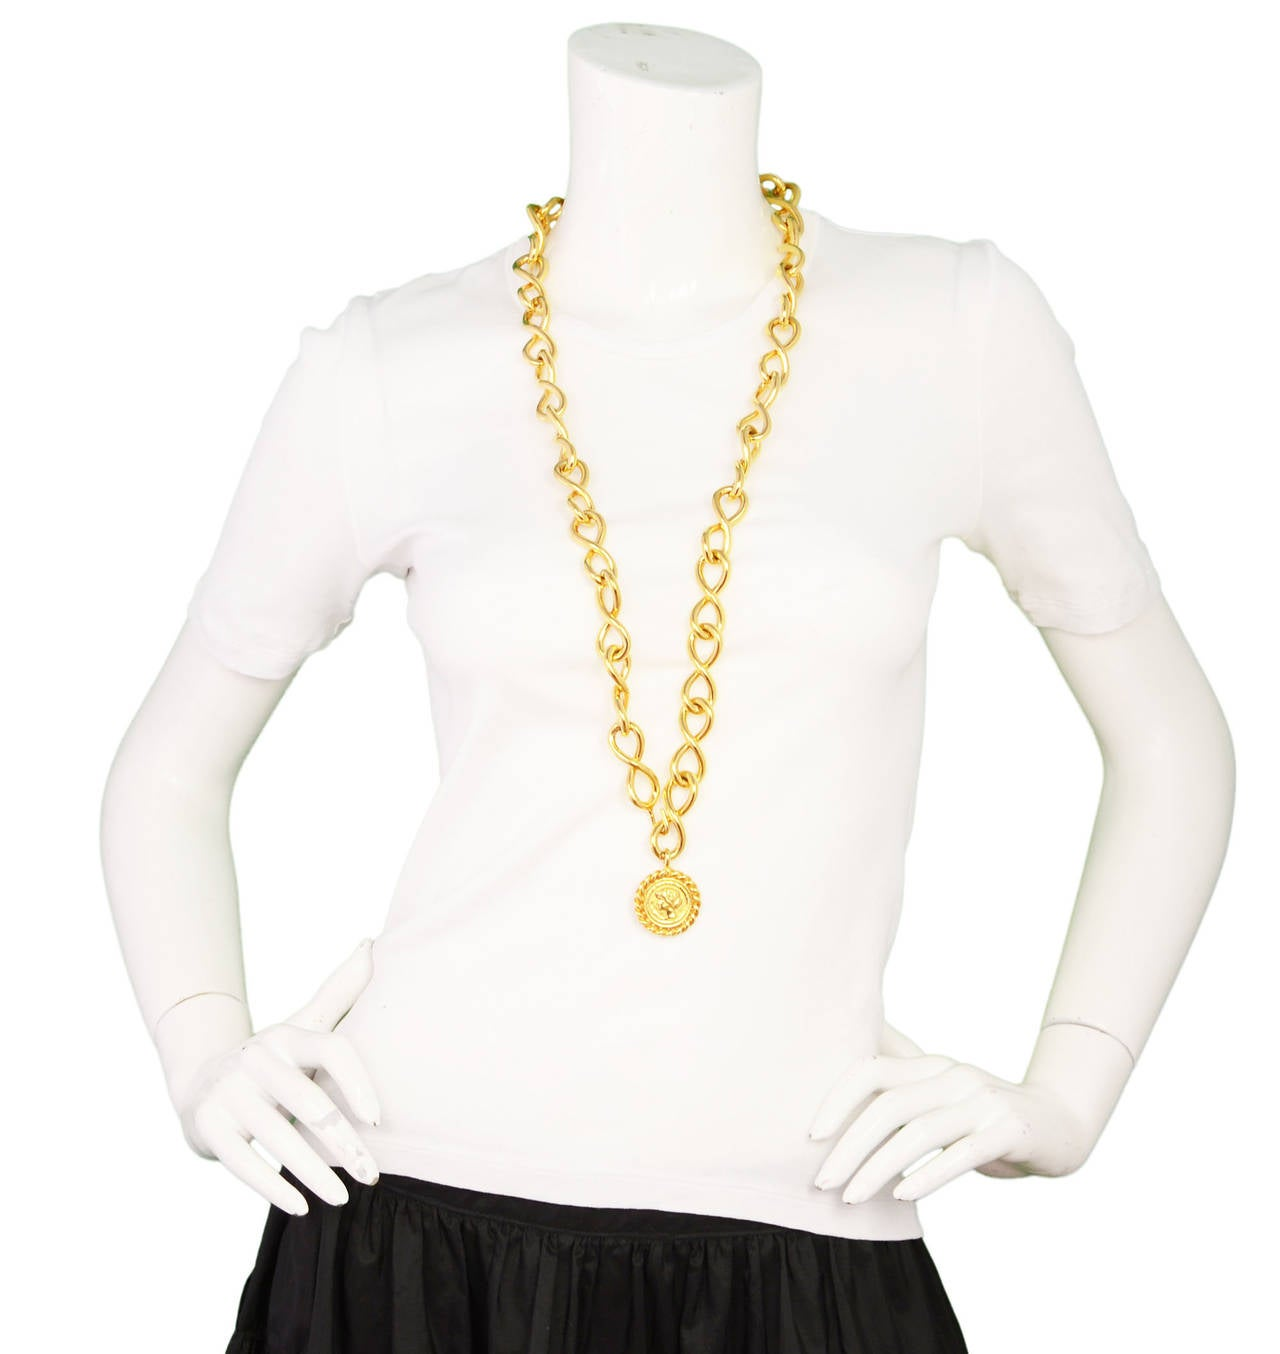 Chanel Vintage Goldtone Coco Coin Swirl Chain Link Belt/Necklace For Sale 1